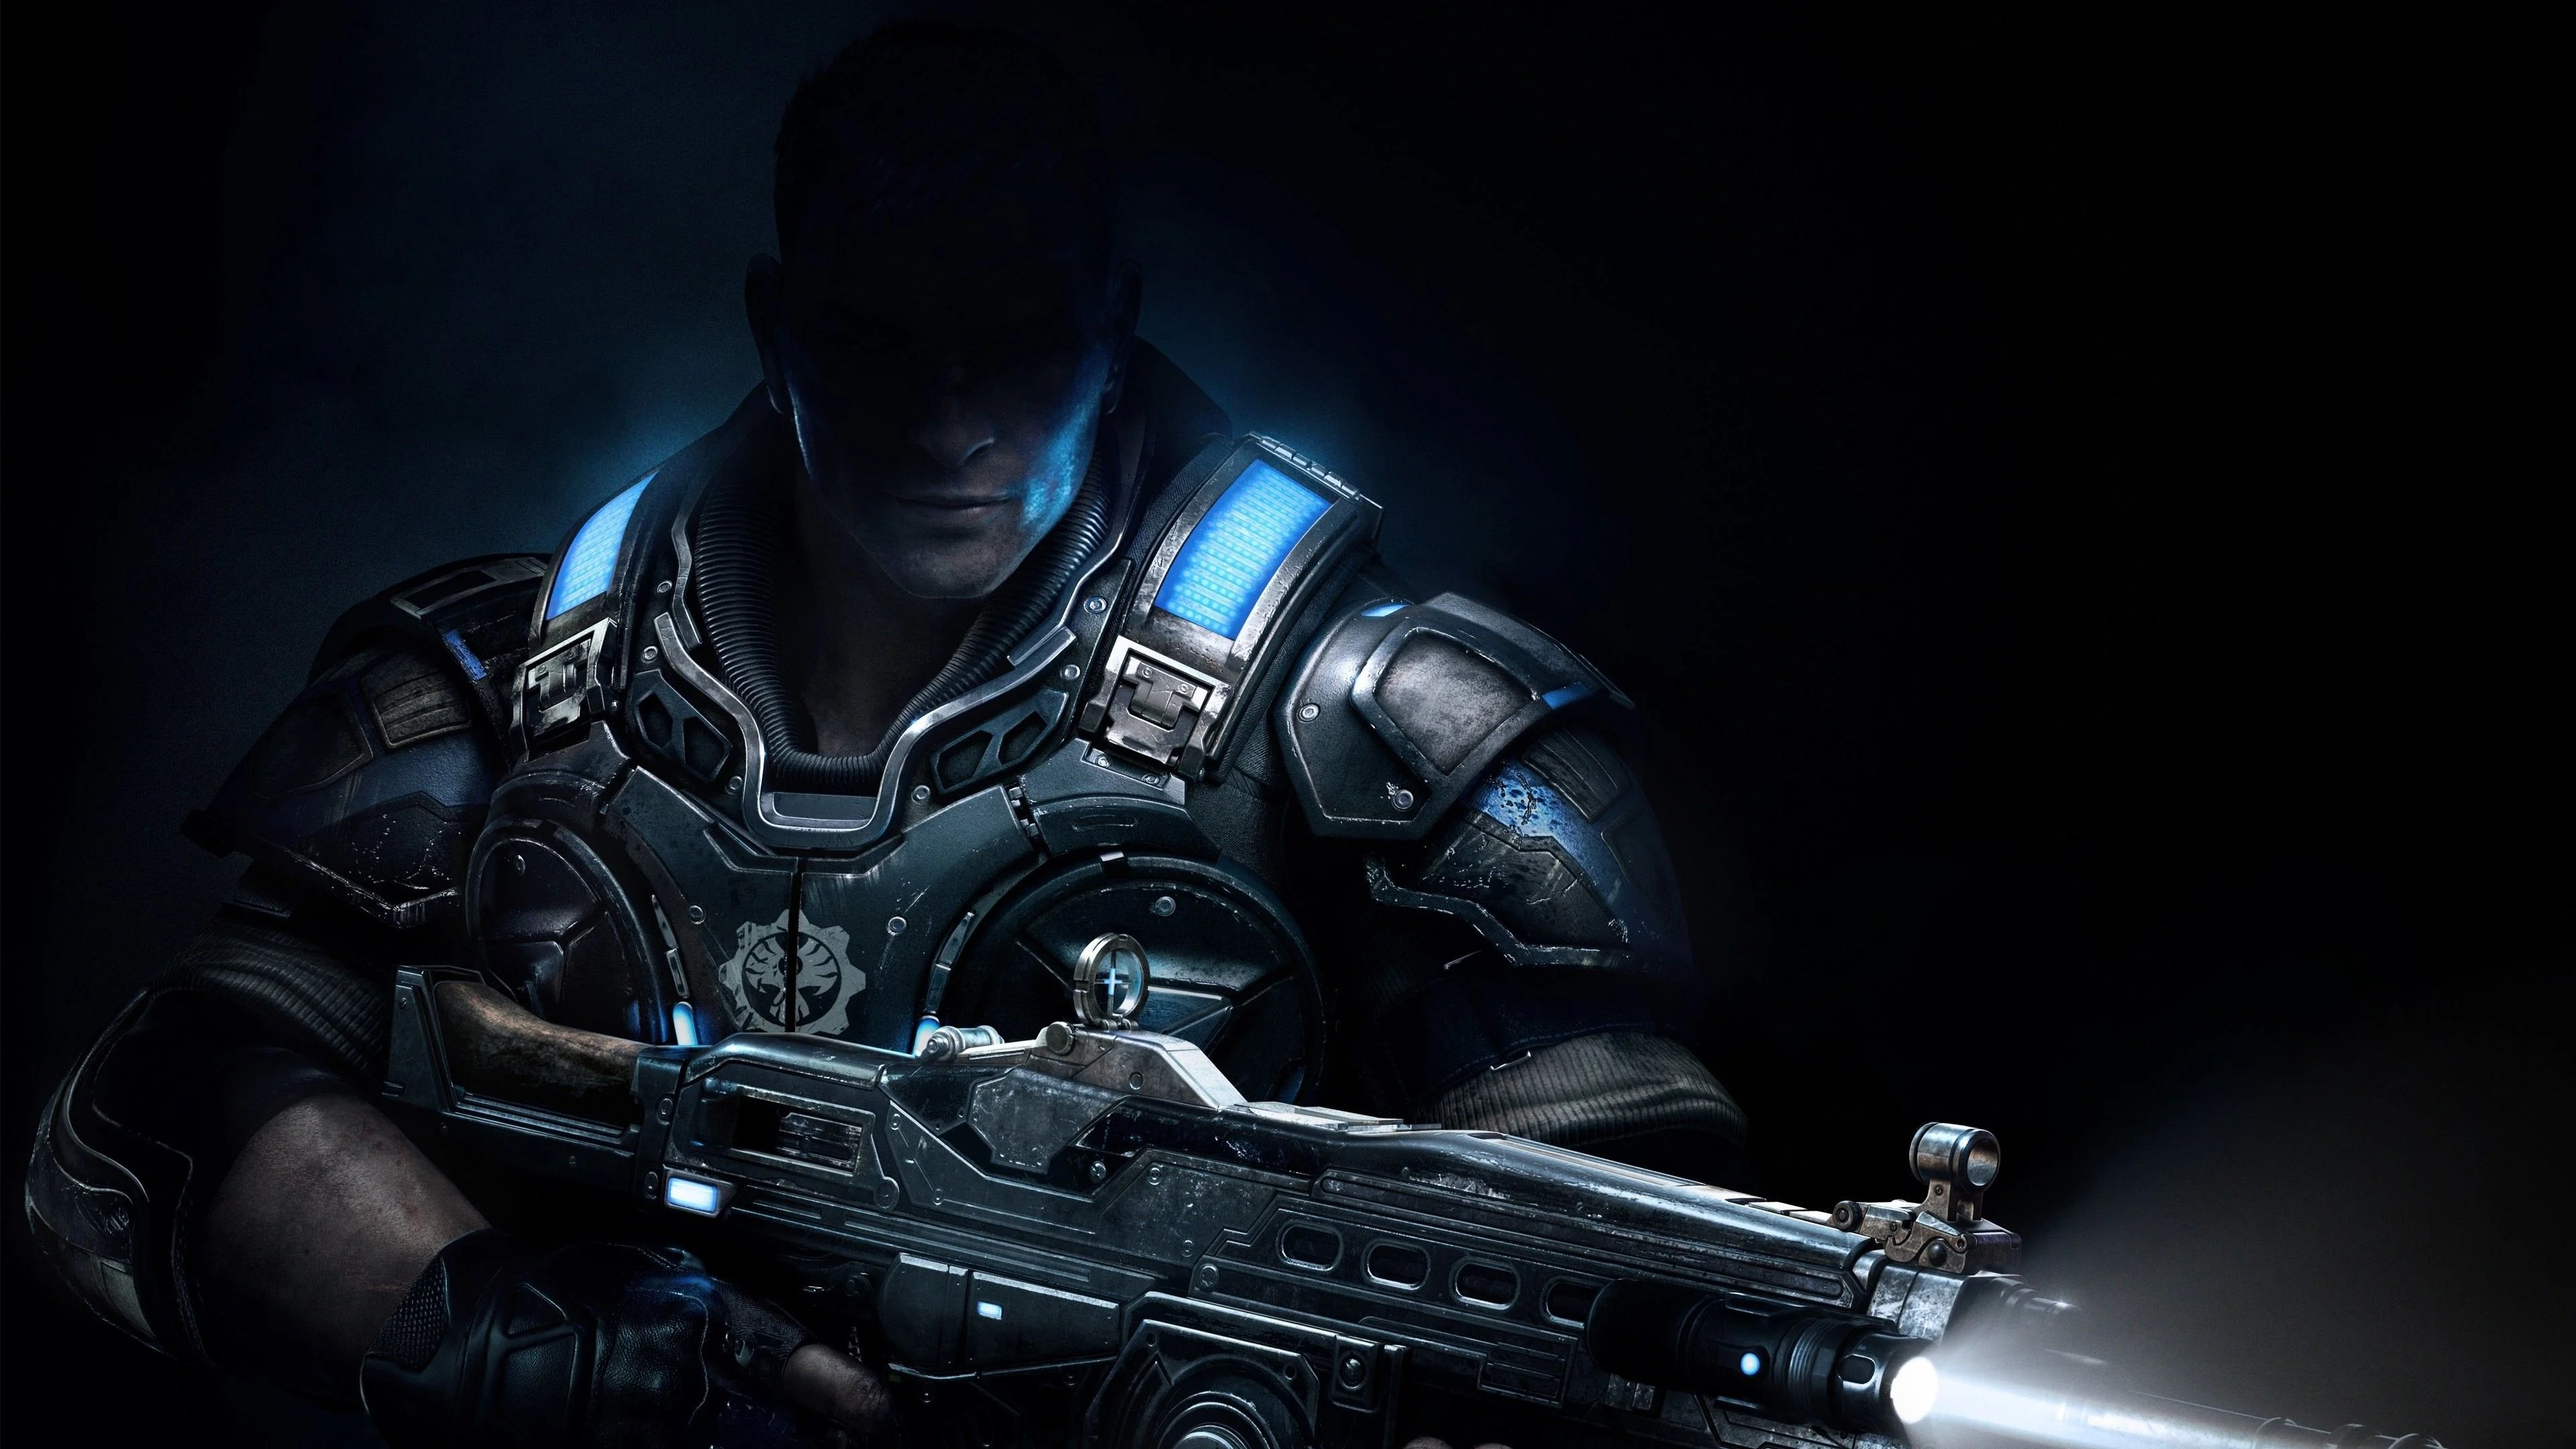 8k Ultra Hd Game Wallpapers Top Free 8k Ultra Hd Game Backgrounds Wallpaperaccess